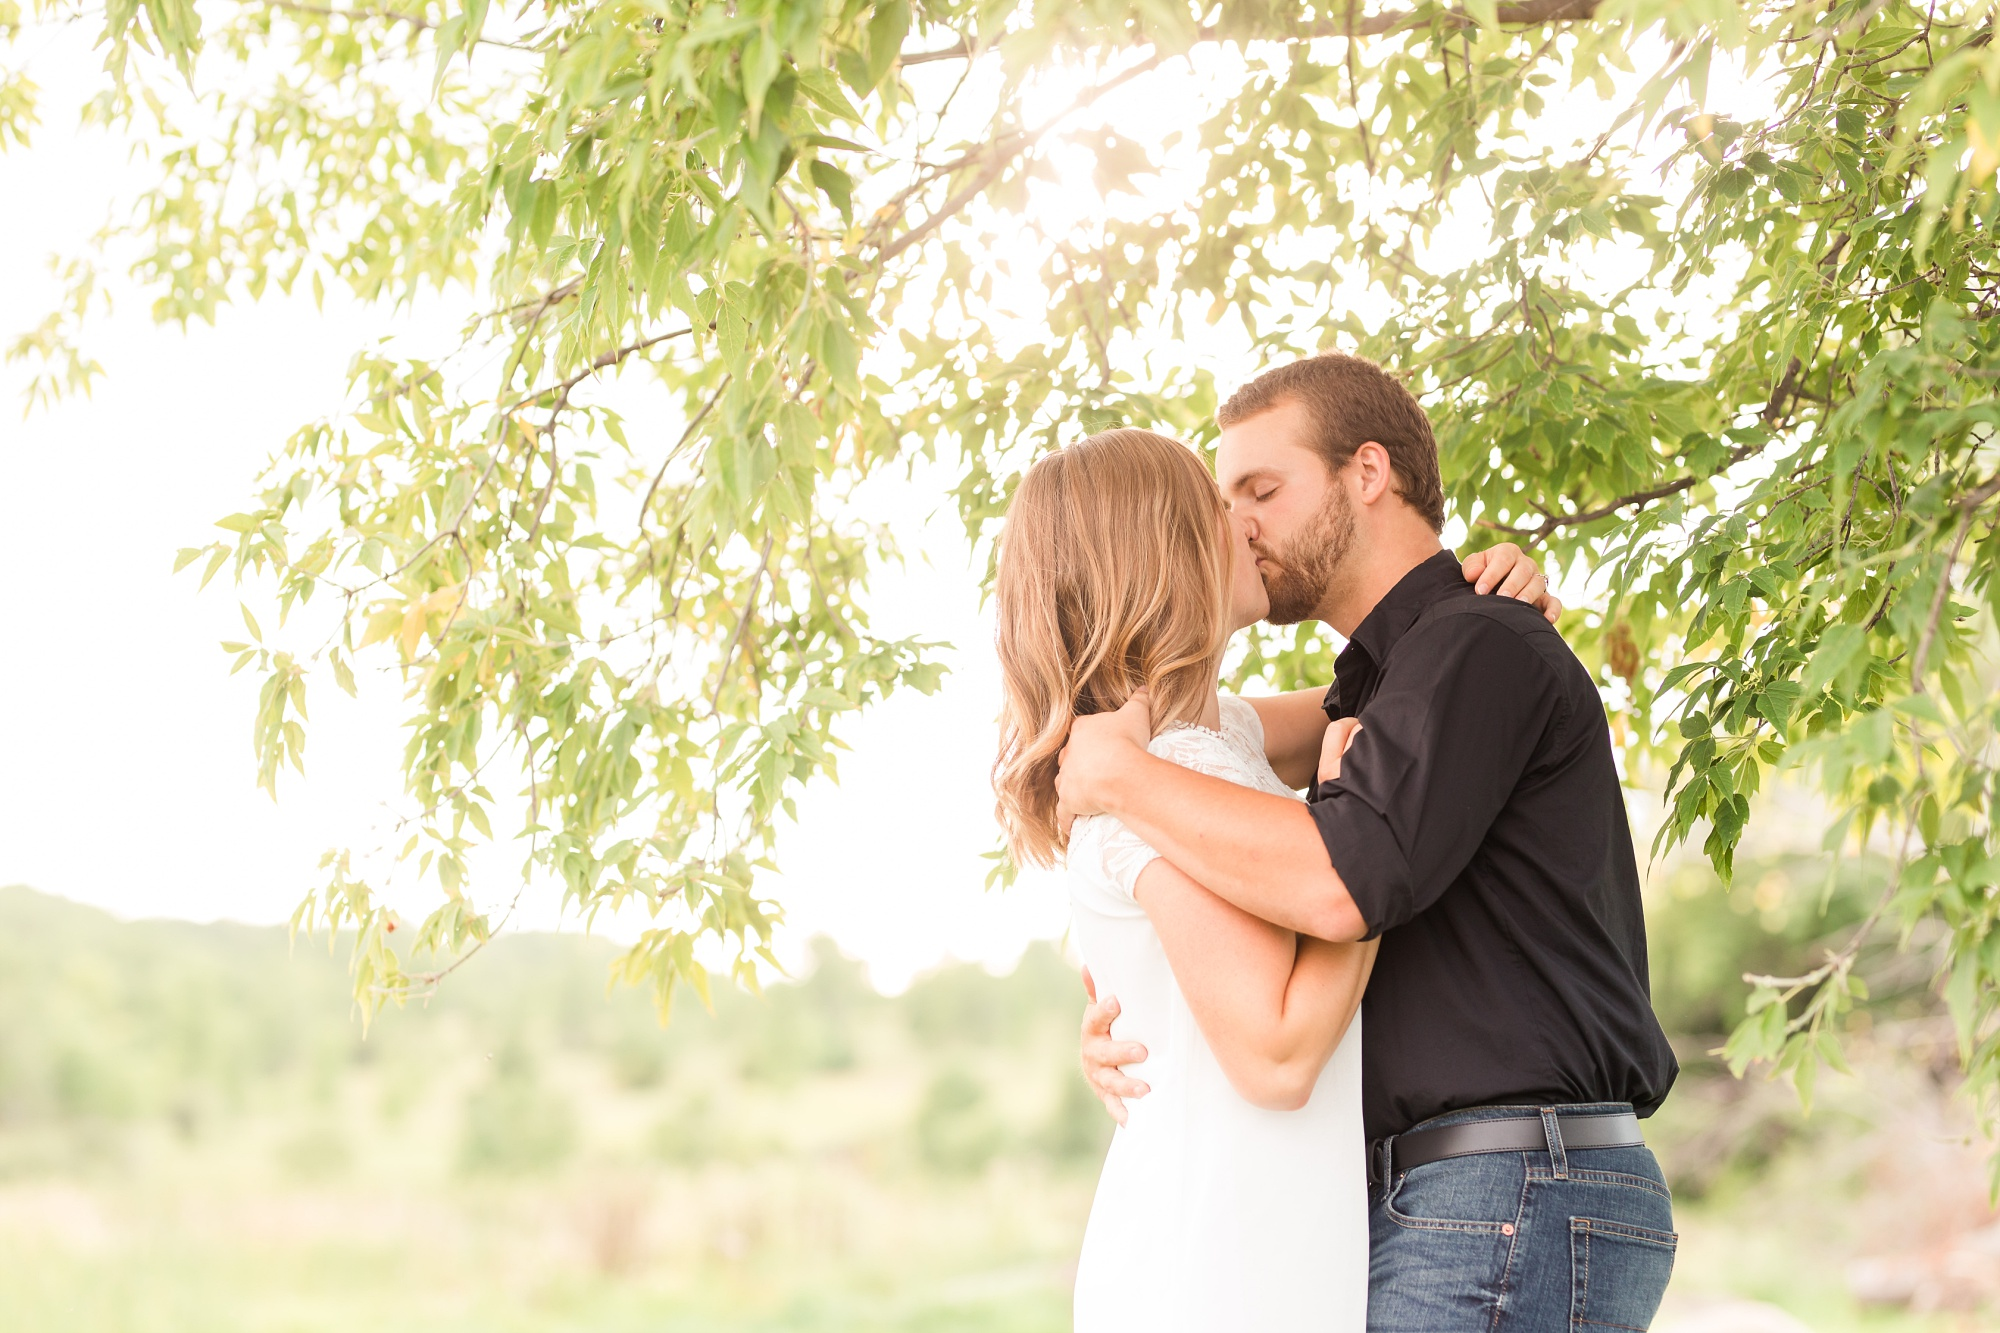 AmberLangerudPhotography_Countryside Engagement Session in Minnesota_3095.jpg